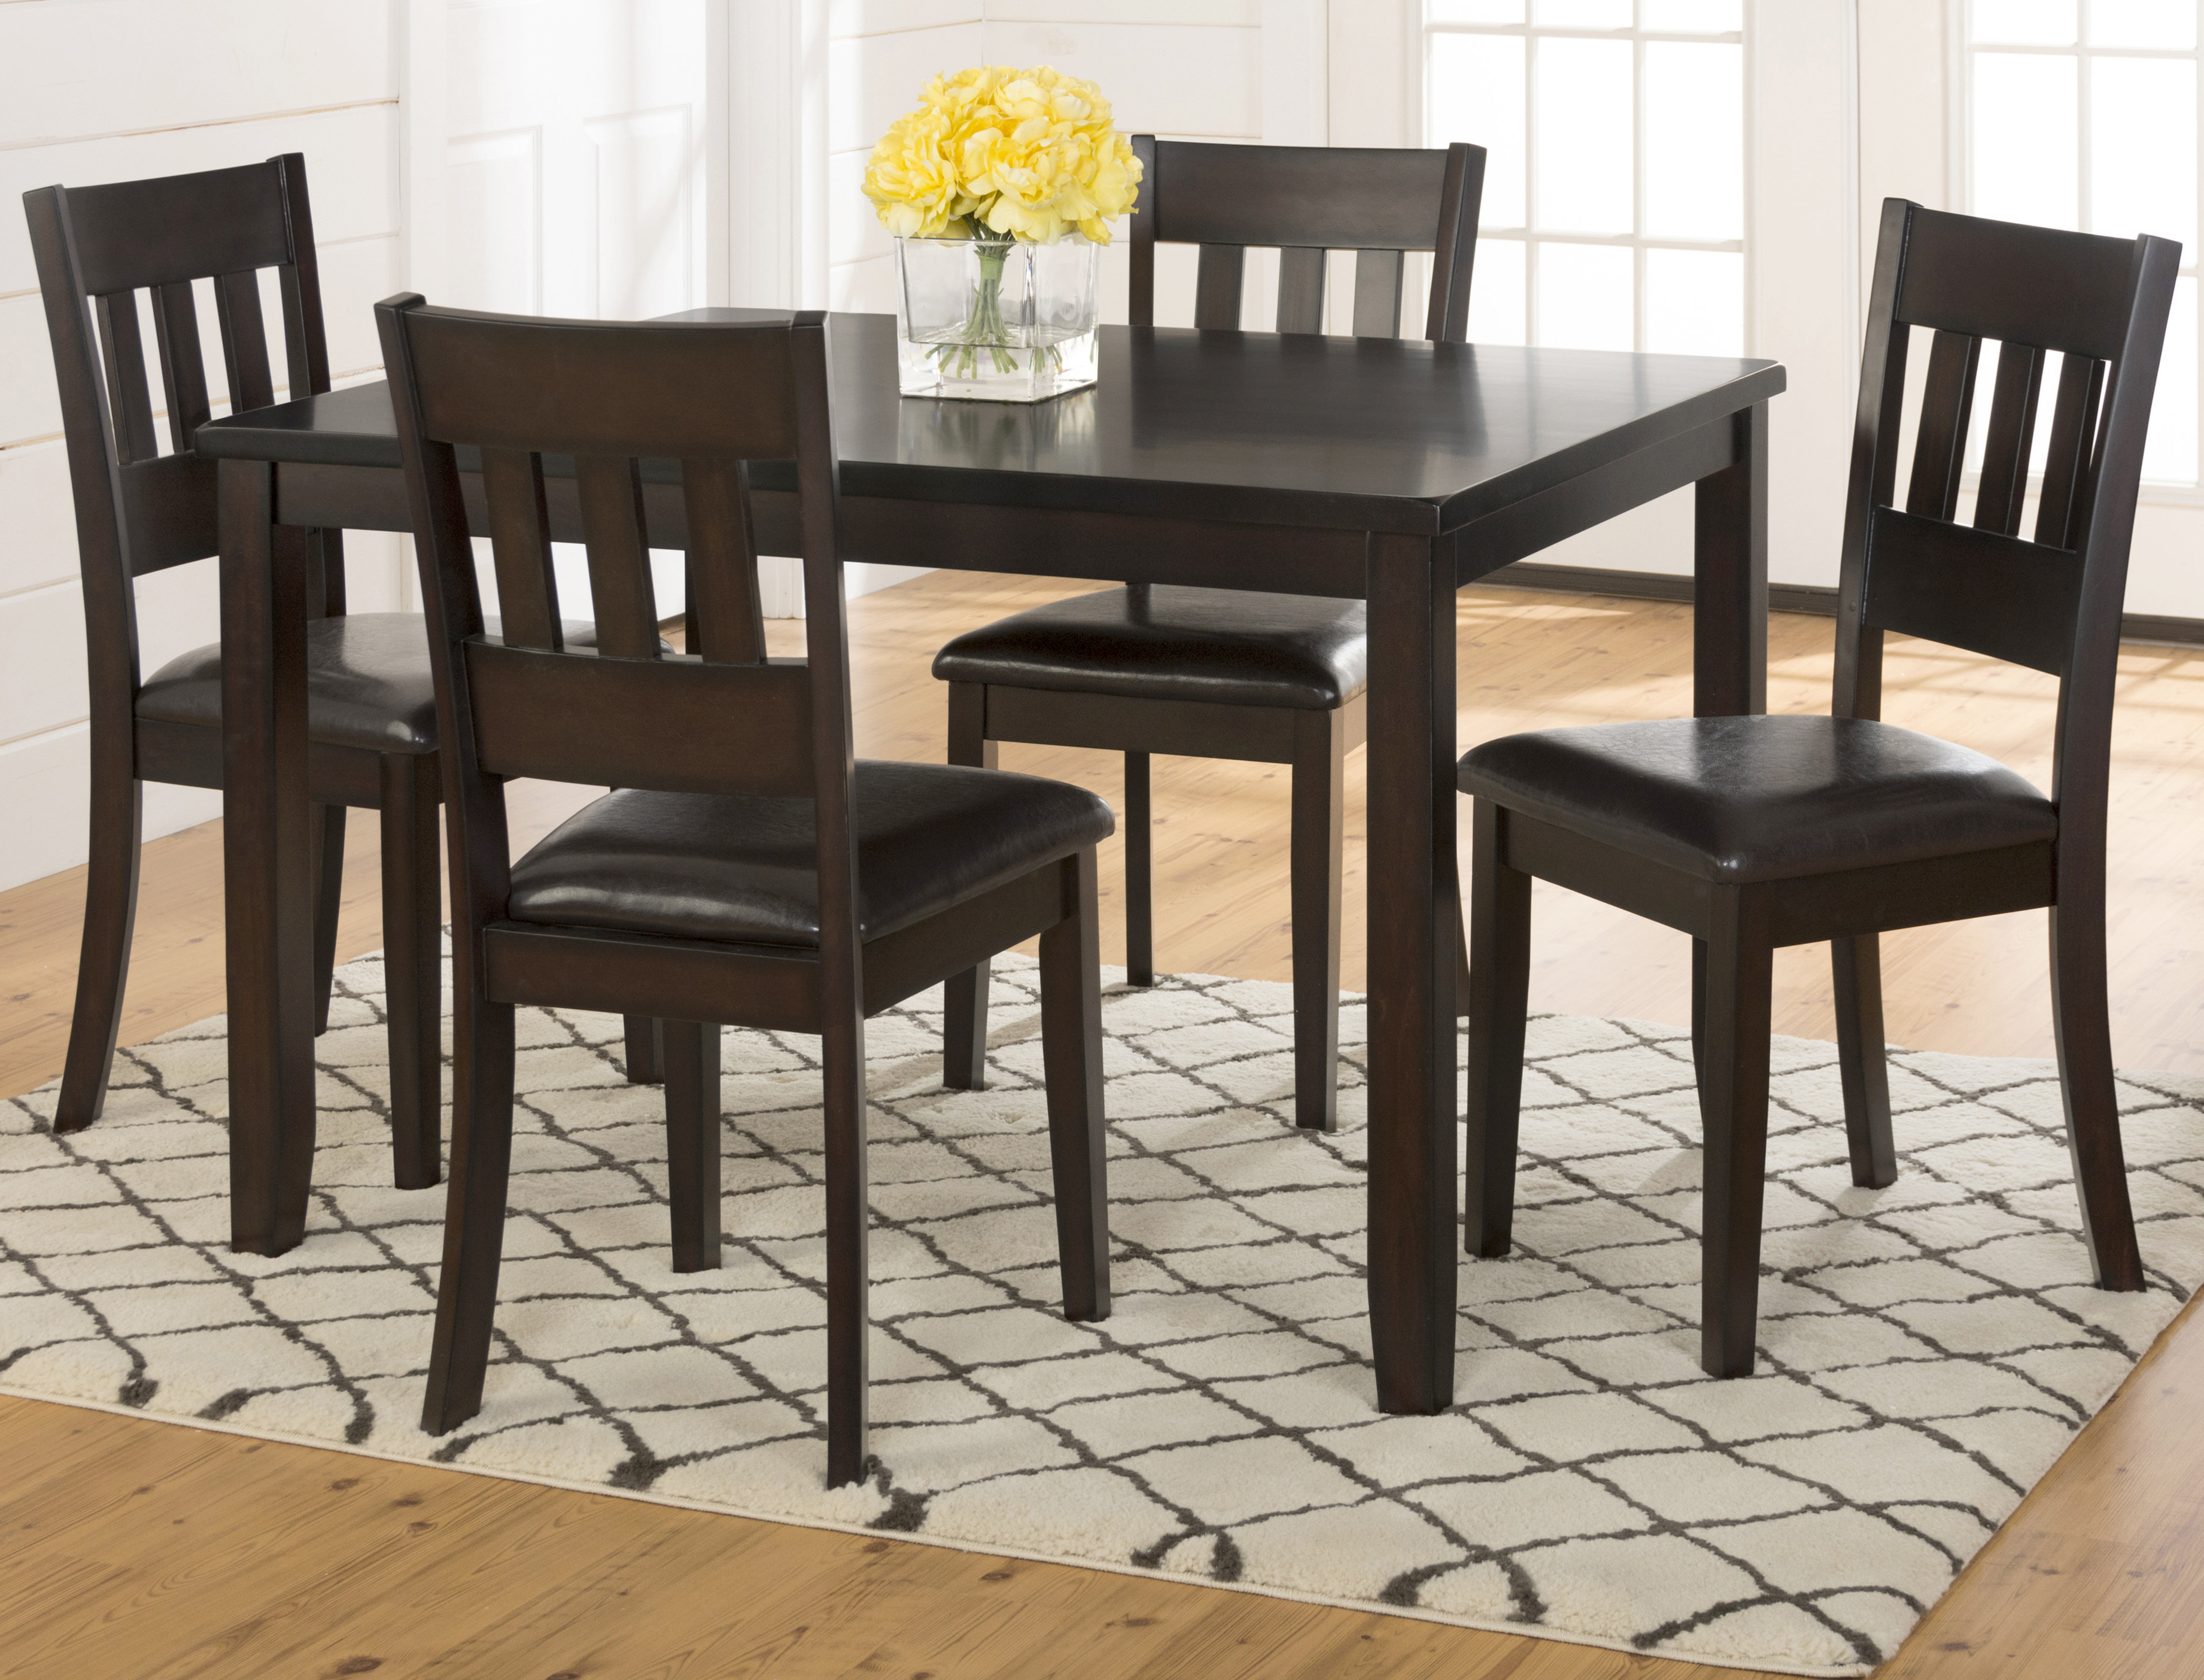 Adan 5 Piece Solid Wood Dining Set Inside Preferred Adan 5 Piece Solid Wood Dining Sets (set Of 5) (Gallery 7 of 20)